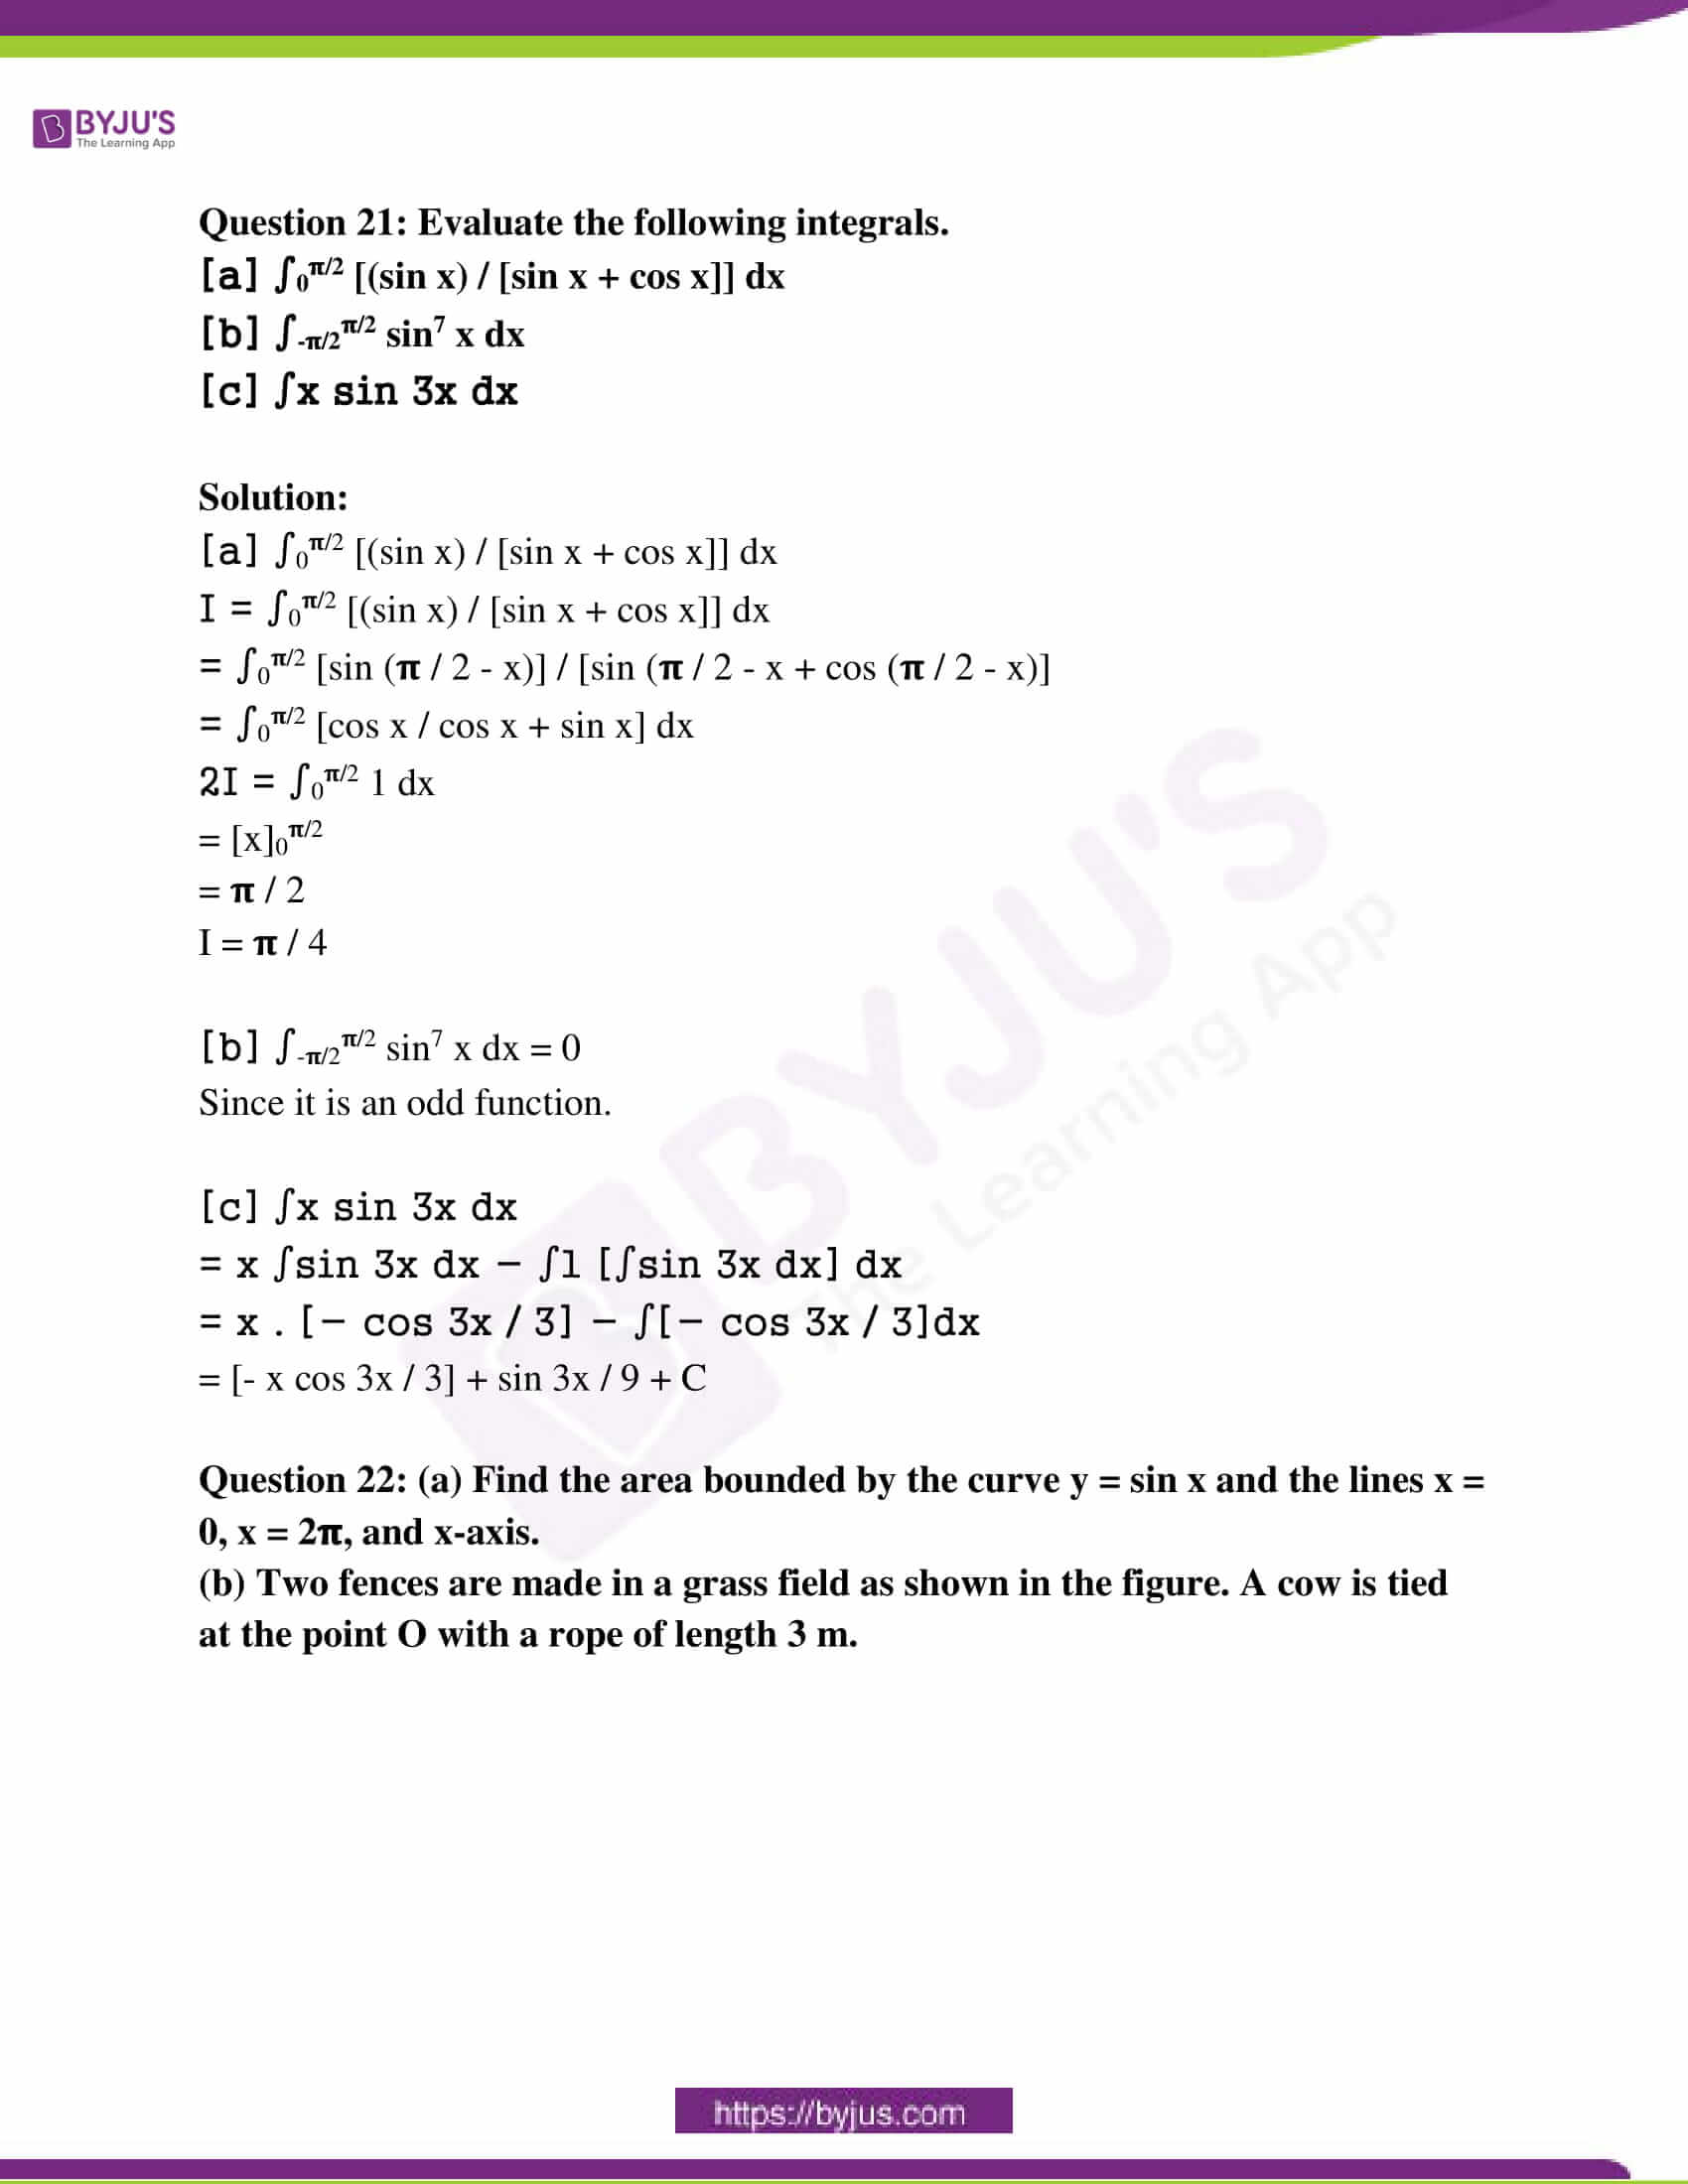 kerala class 12 examination question paper solutions march 2019 17